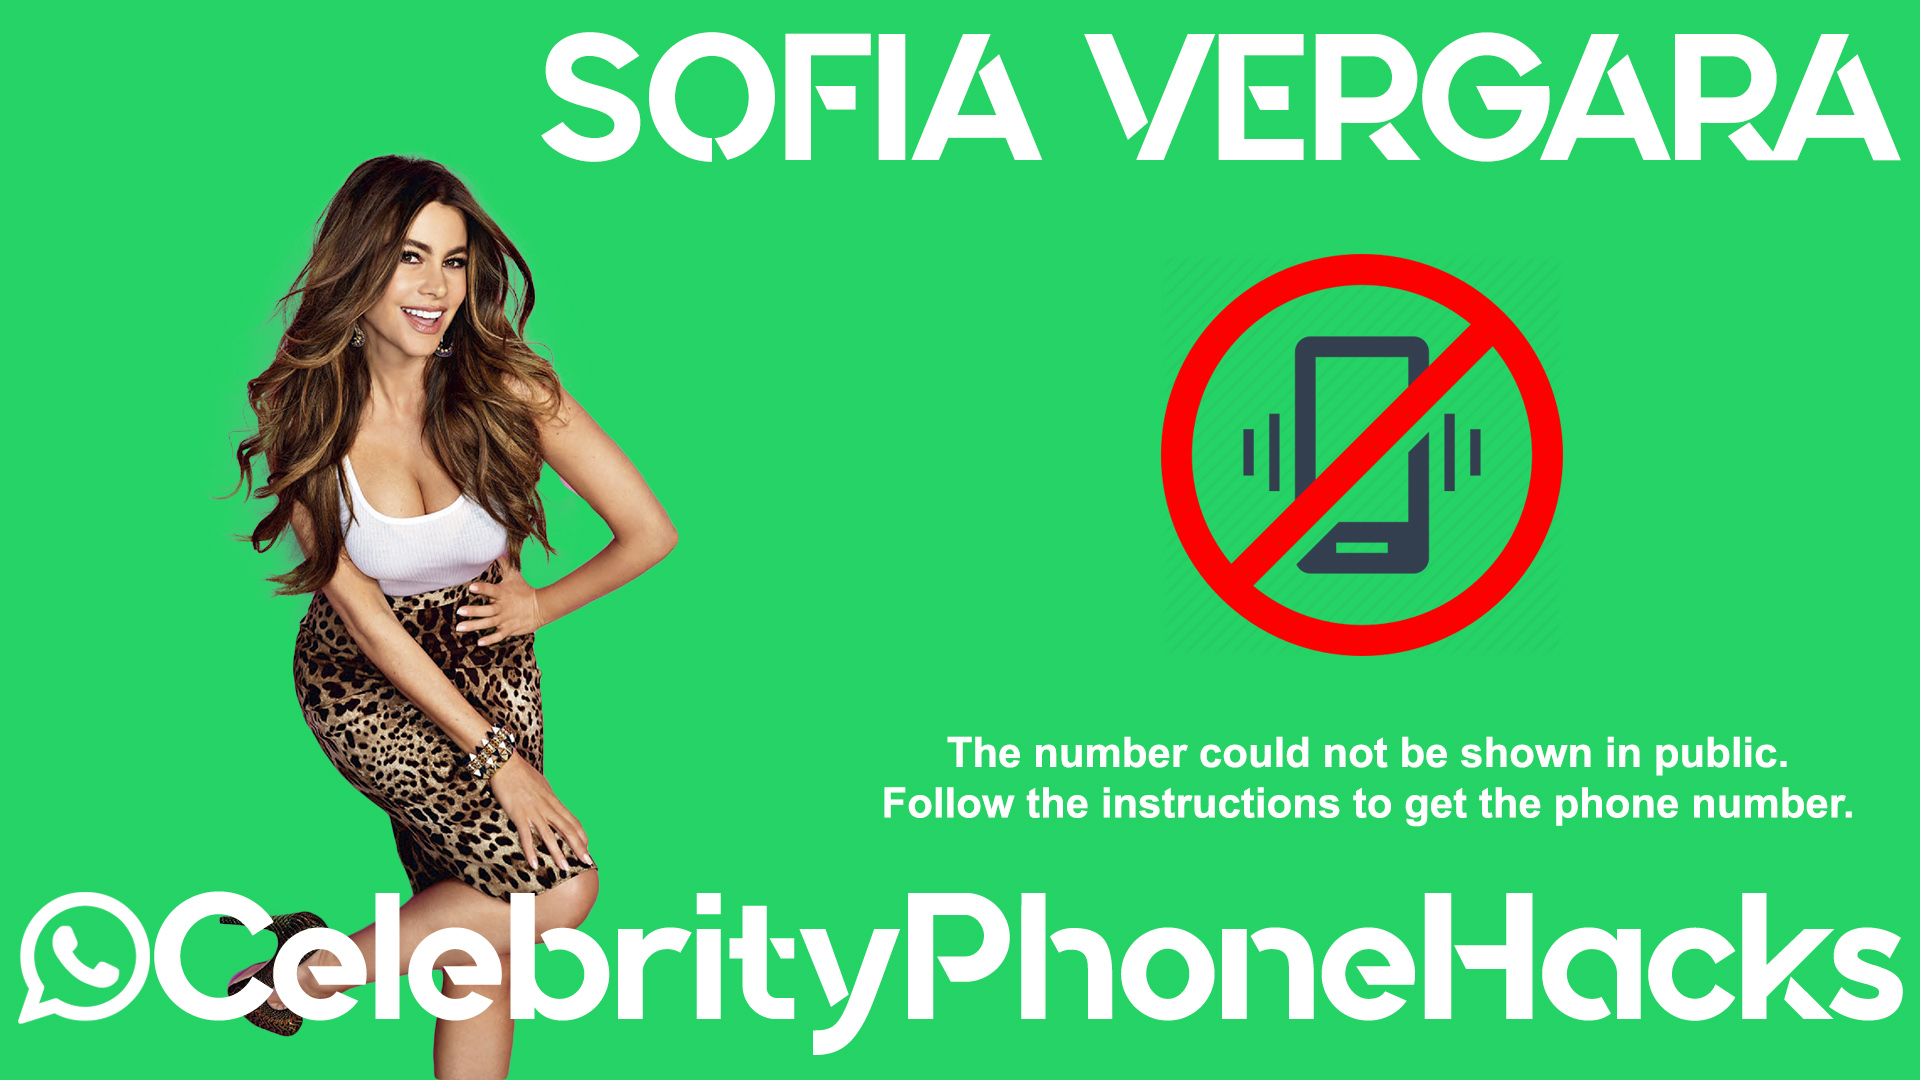 Sofia Vergara real phone number 2019 whatsapp hacked leaked